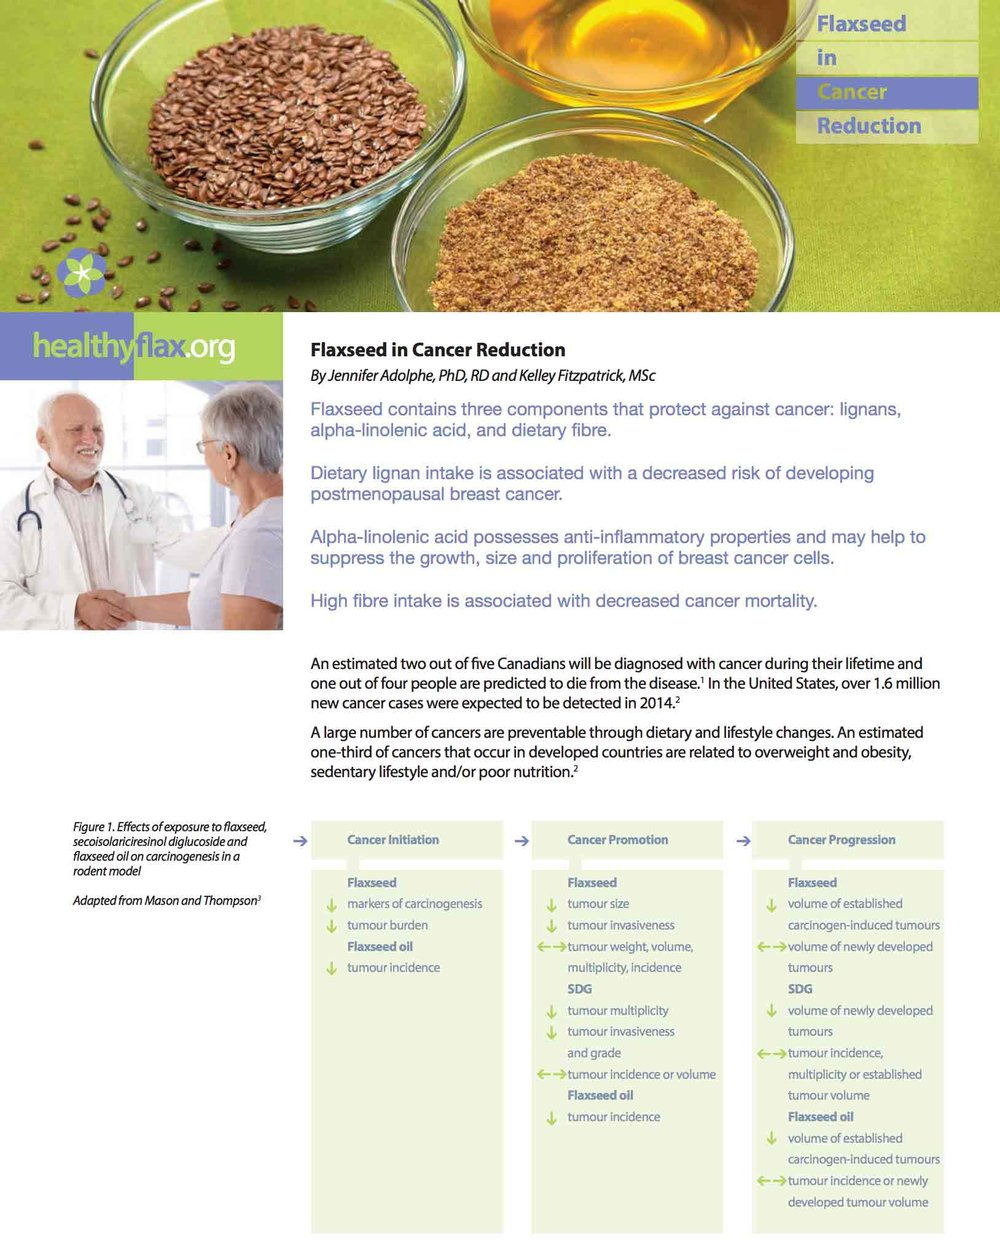 Flaxseed and Cancer Reduction - Read the full article as a PDF.